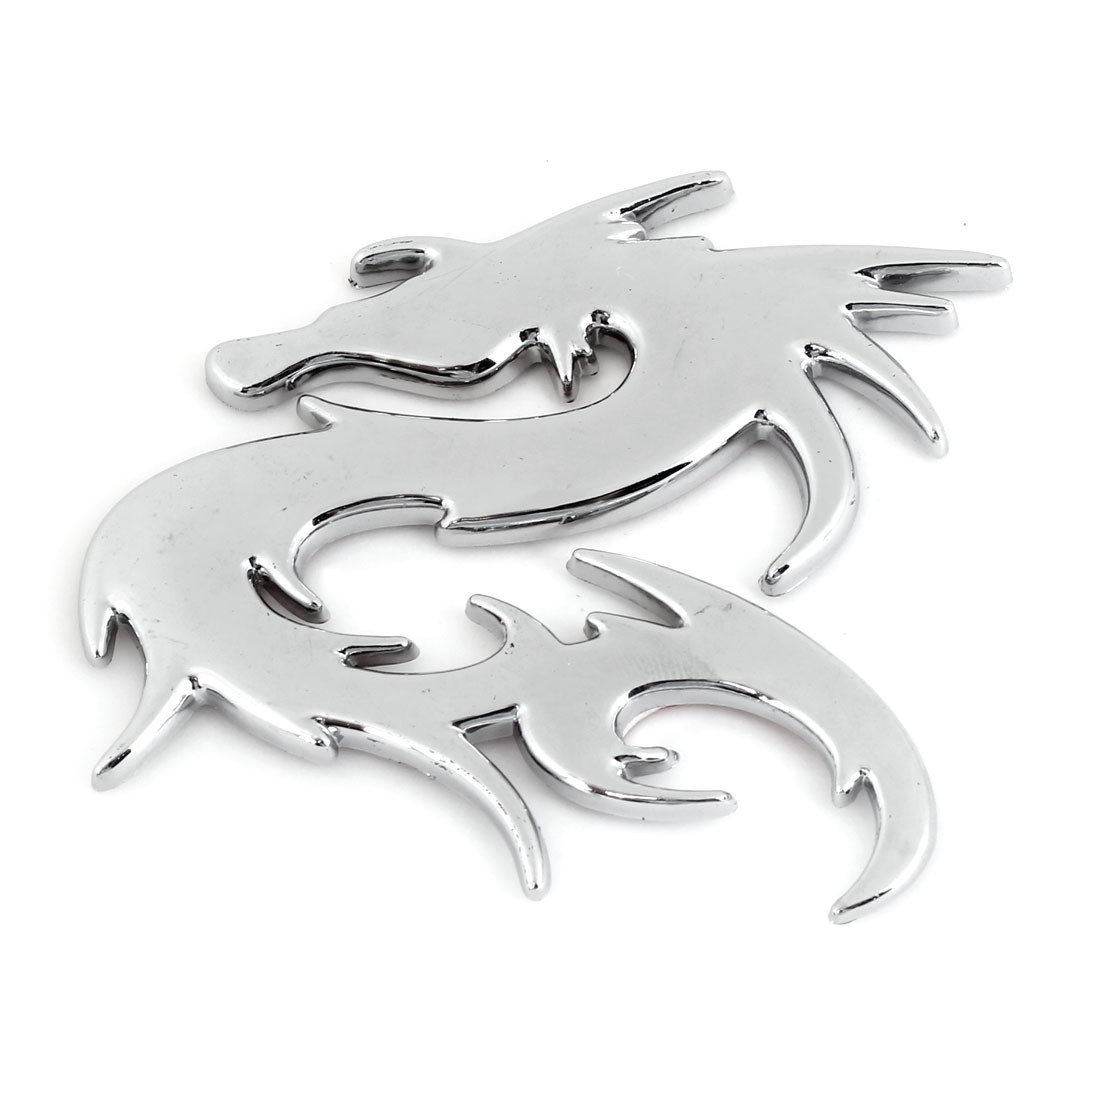 Silver Tone Plastic Dragon Shaped Self Adhesive Car Automobile Badge Sticker